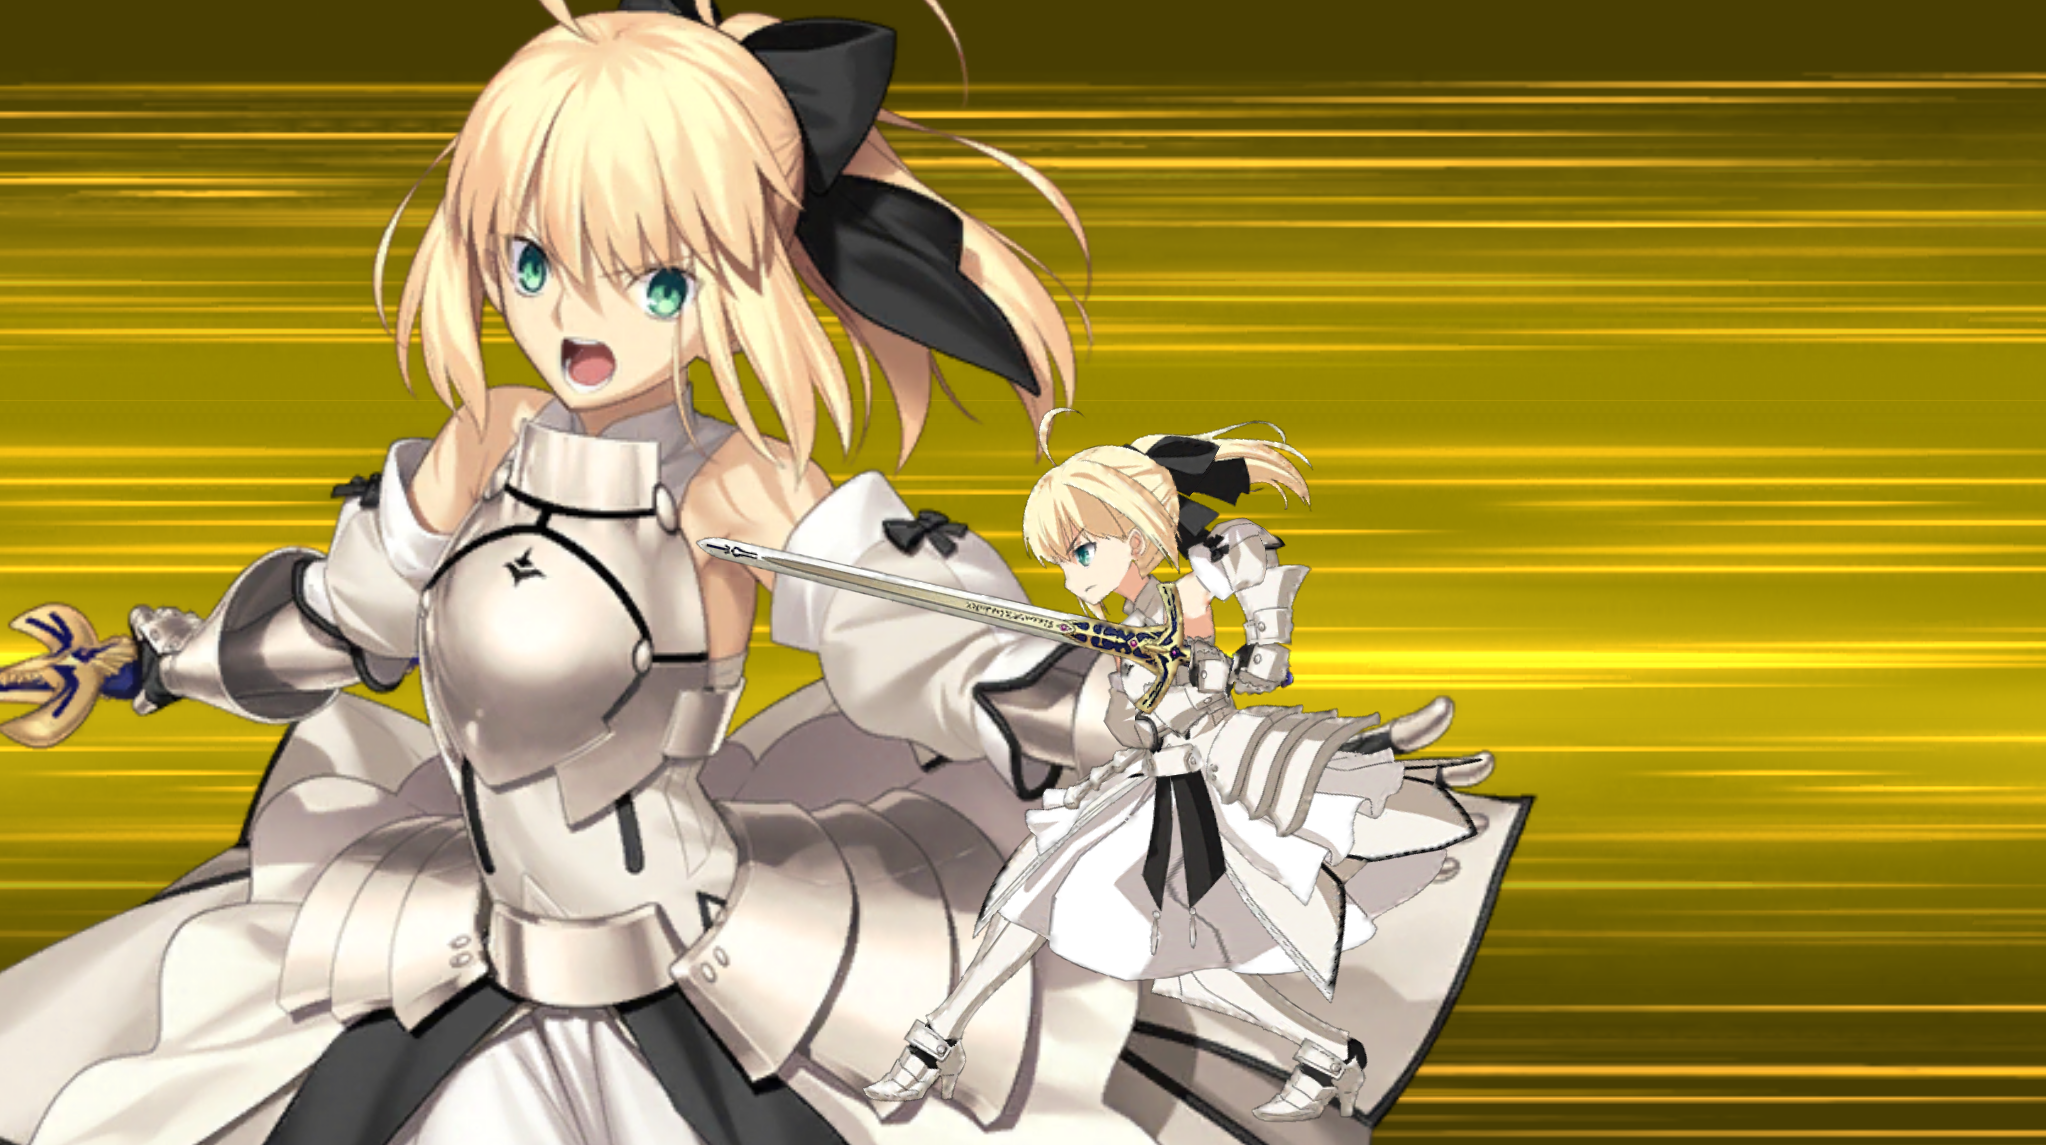 Screenshot of Fate character Saber attacking.